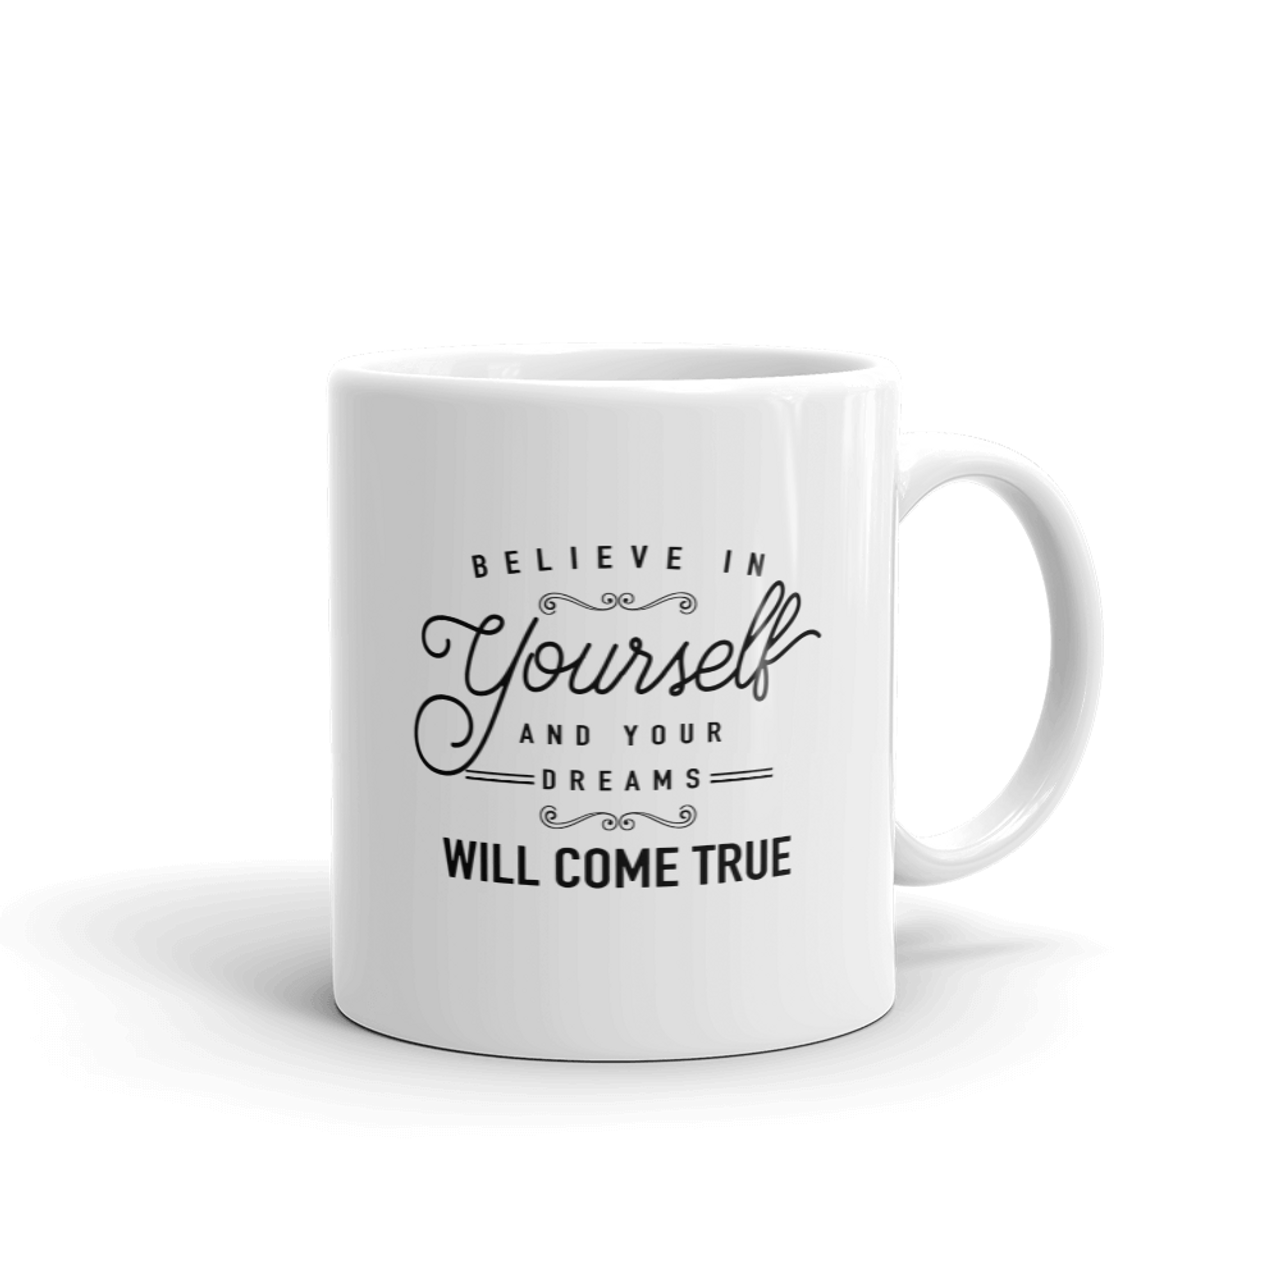 Believe In Yourself Motivational Quote Coffee Mug Design   11oz.